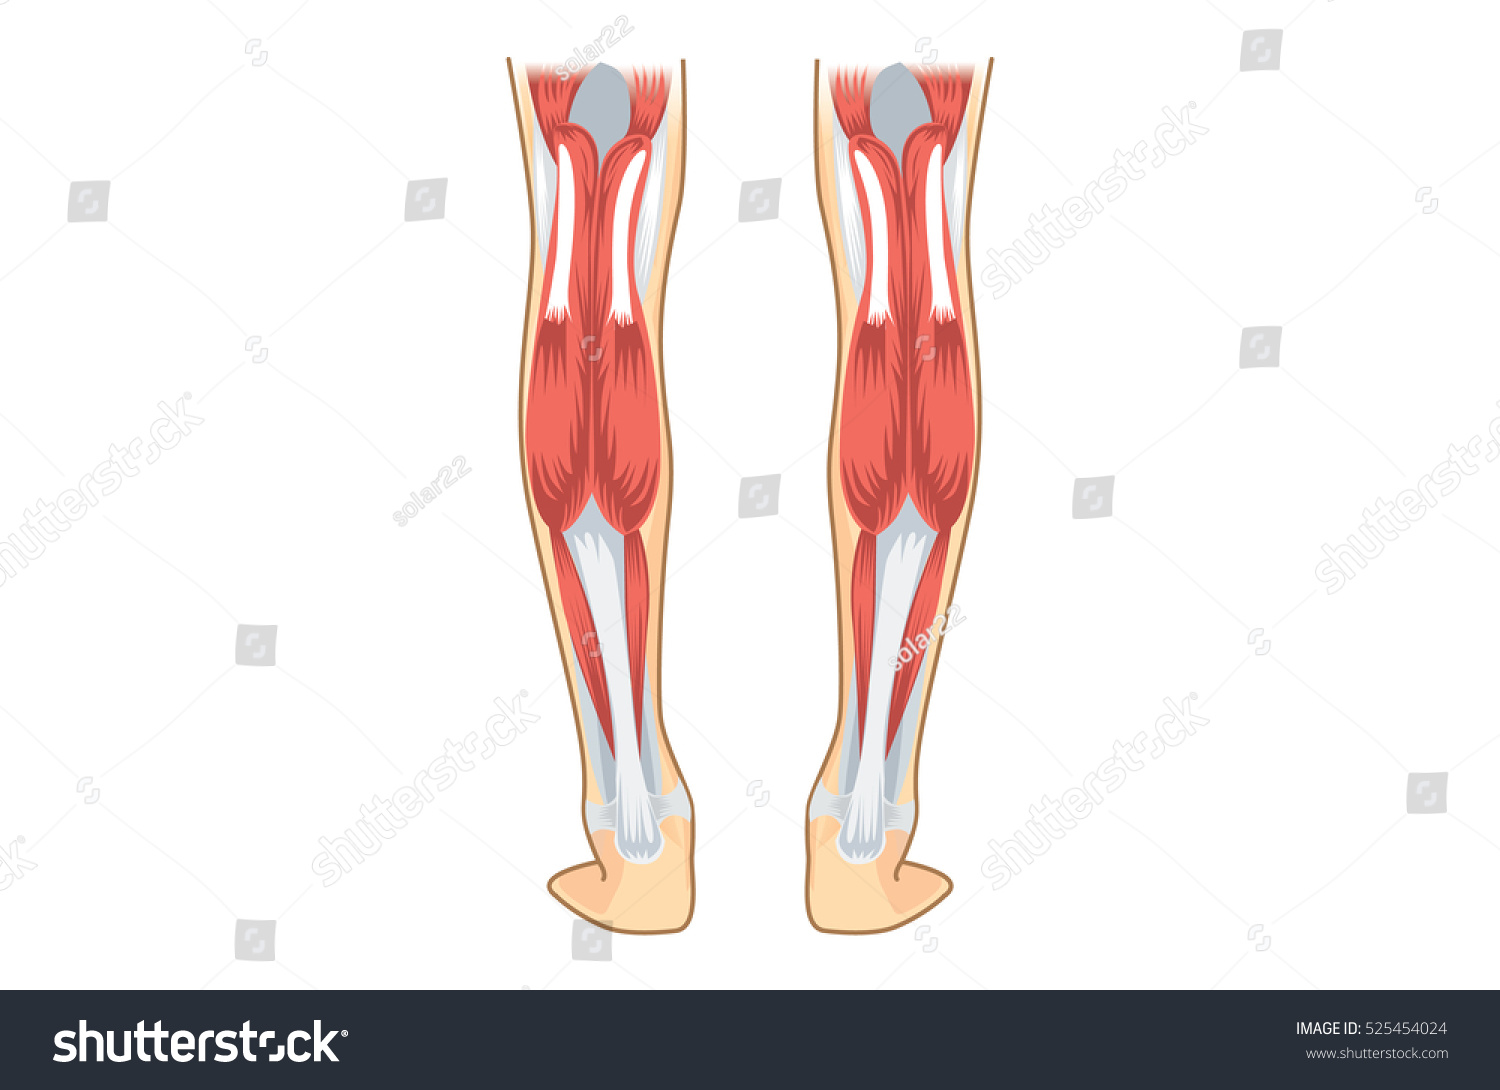 Calf Muscle Human Illustration About Human Stock Vector Hd Royalty